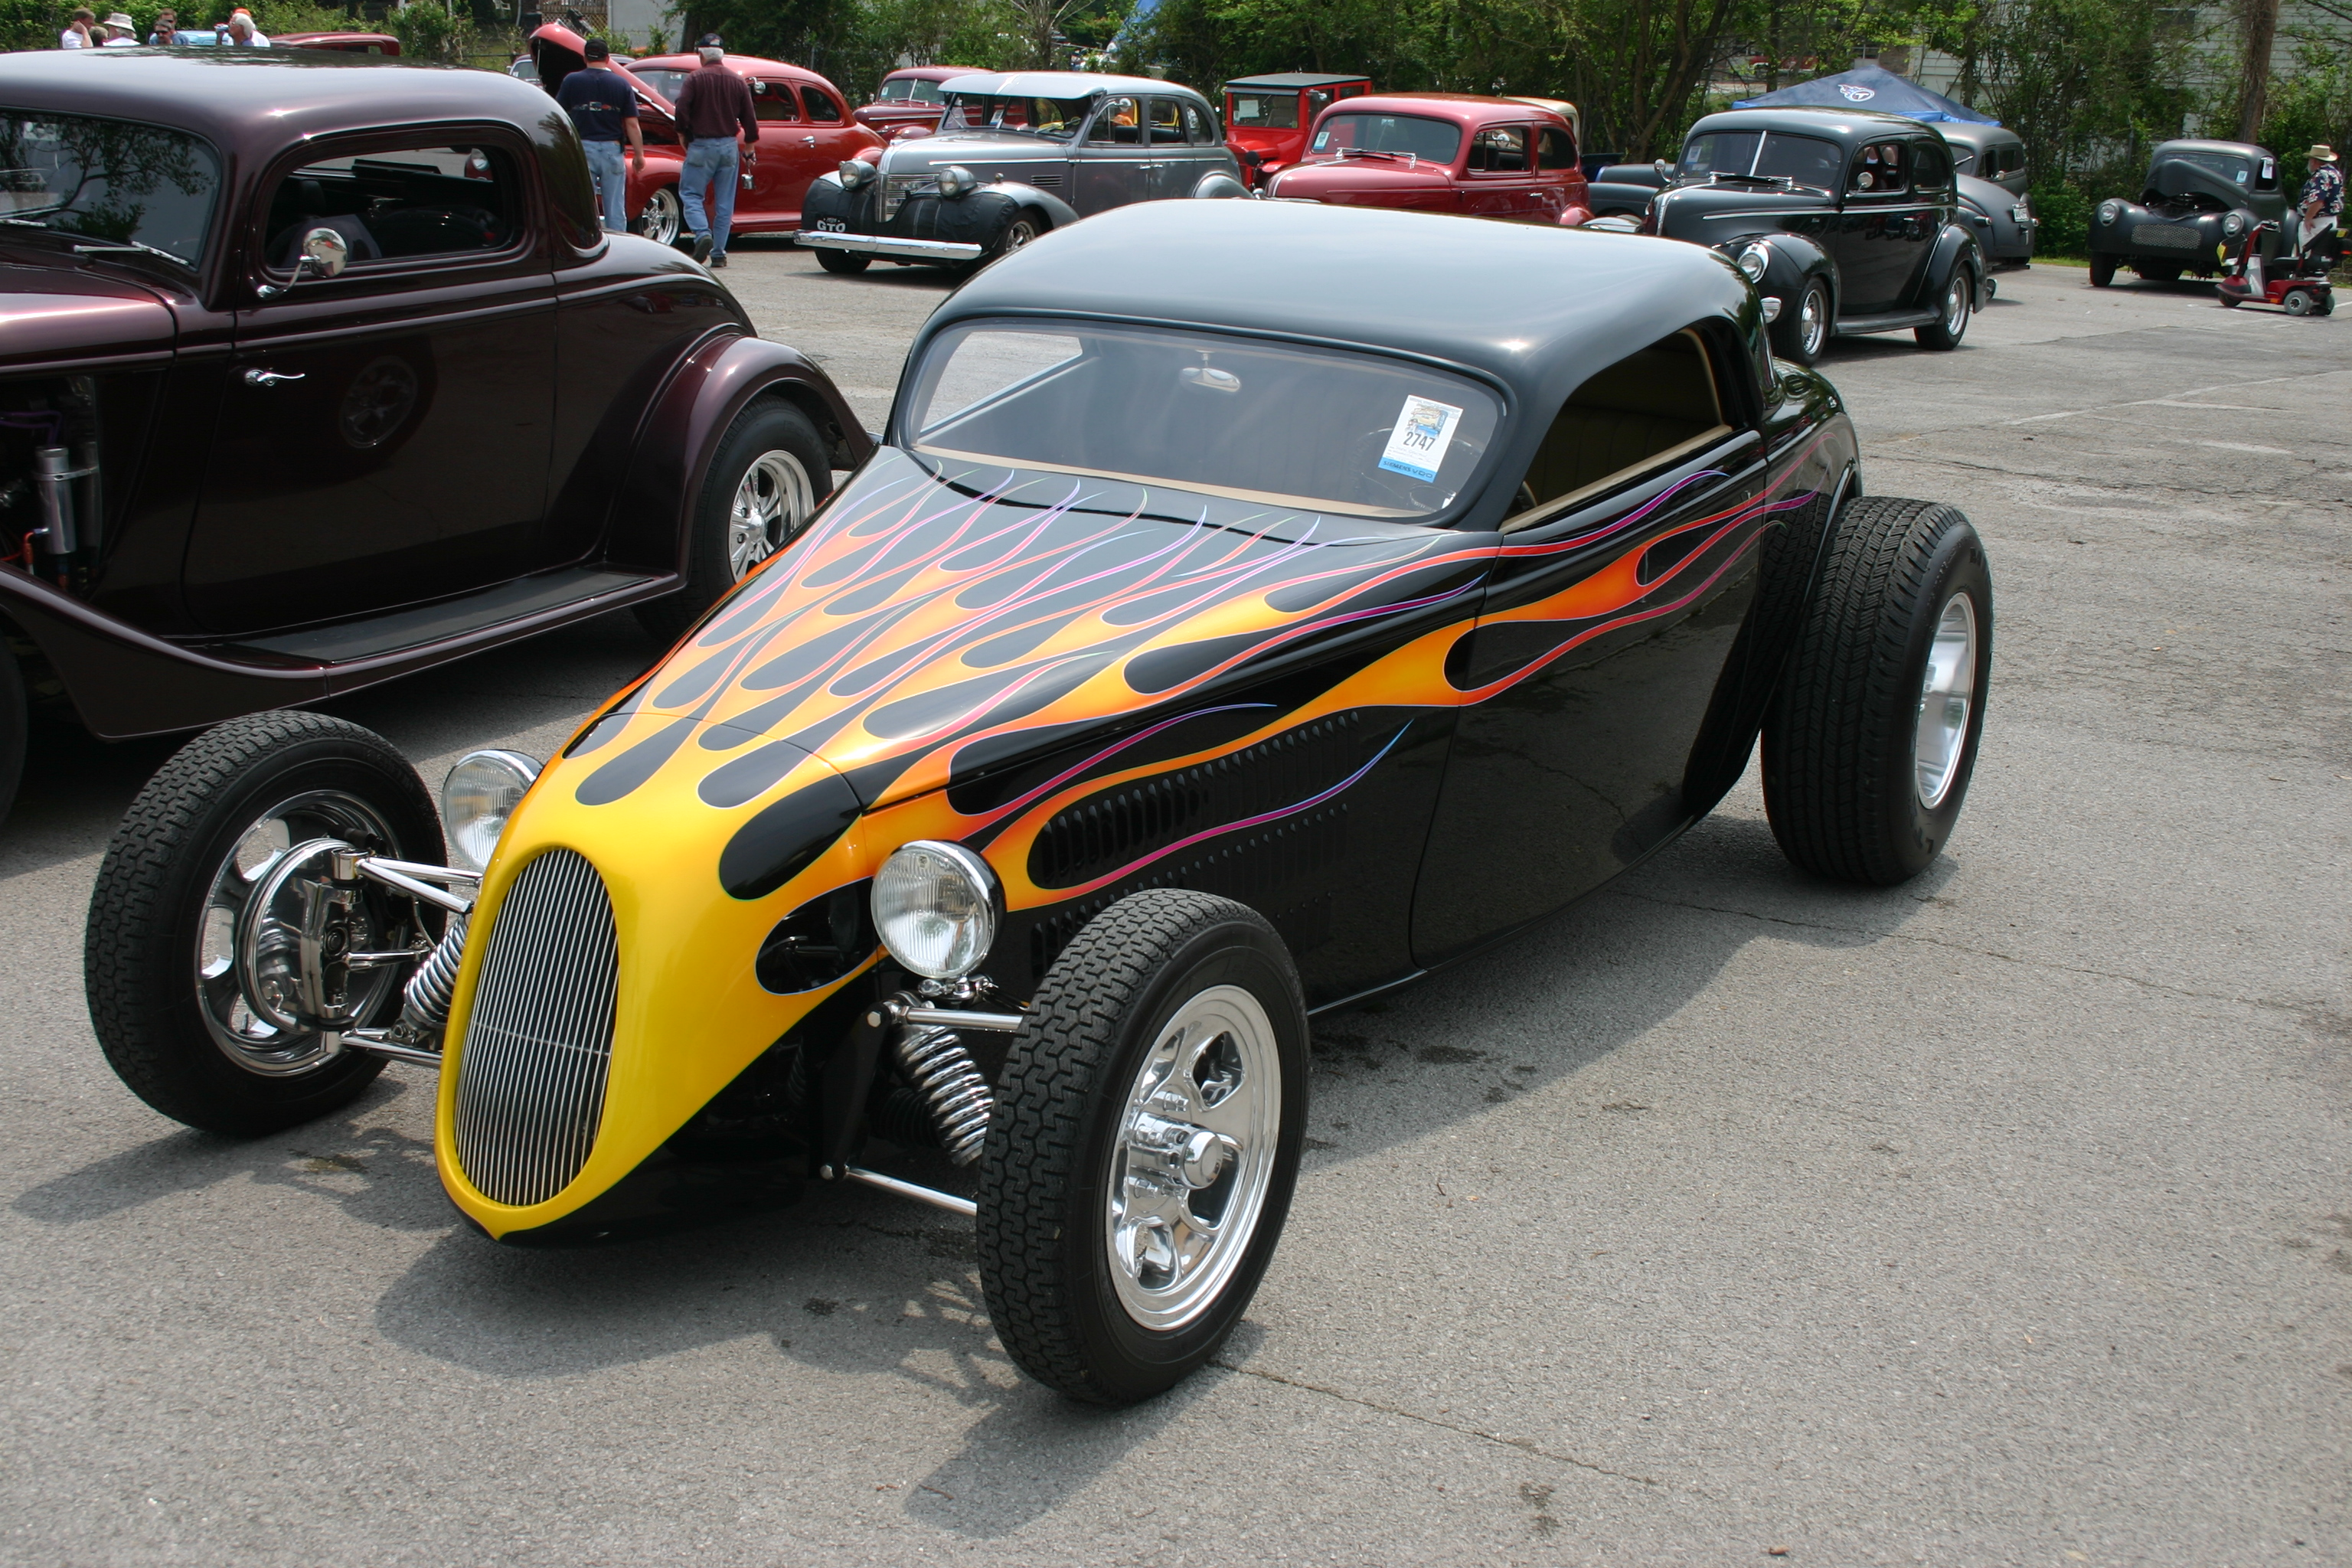 A beautiful street rod that I saw in Tennessee